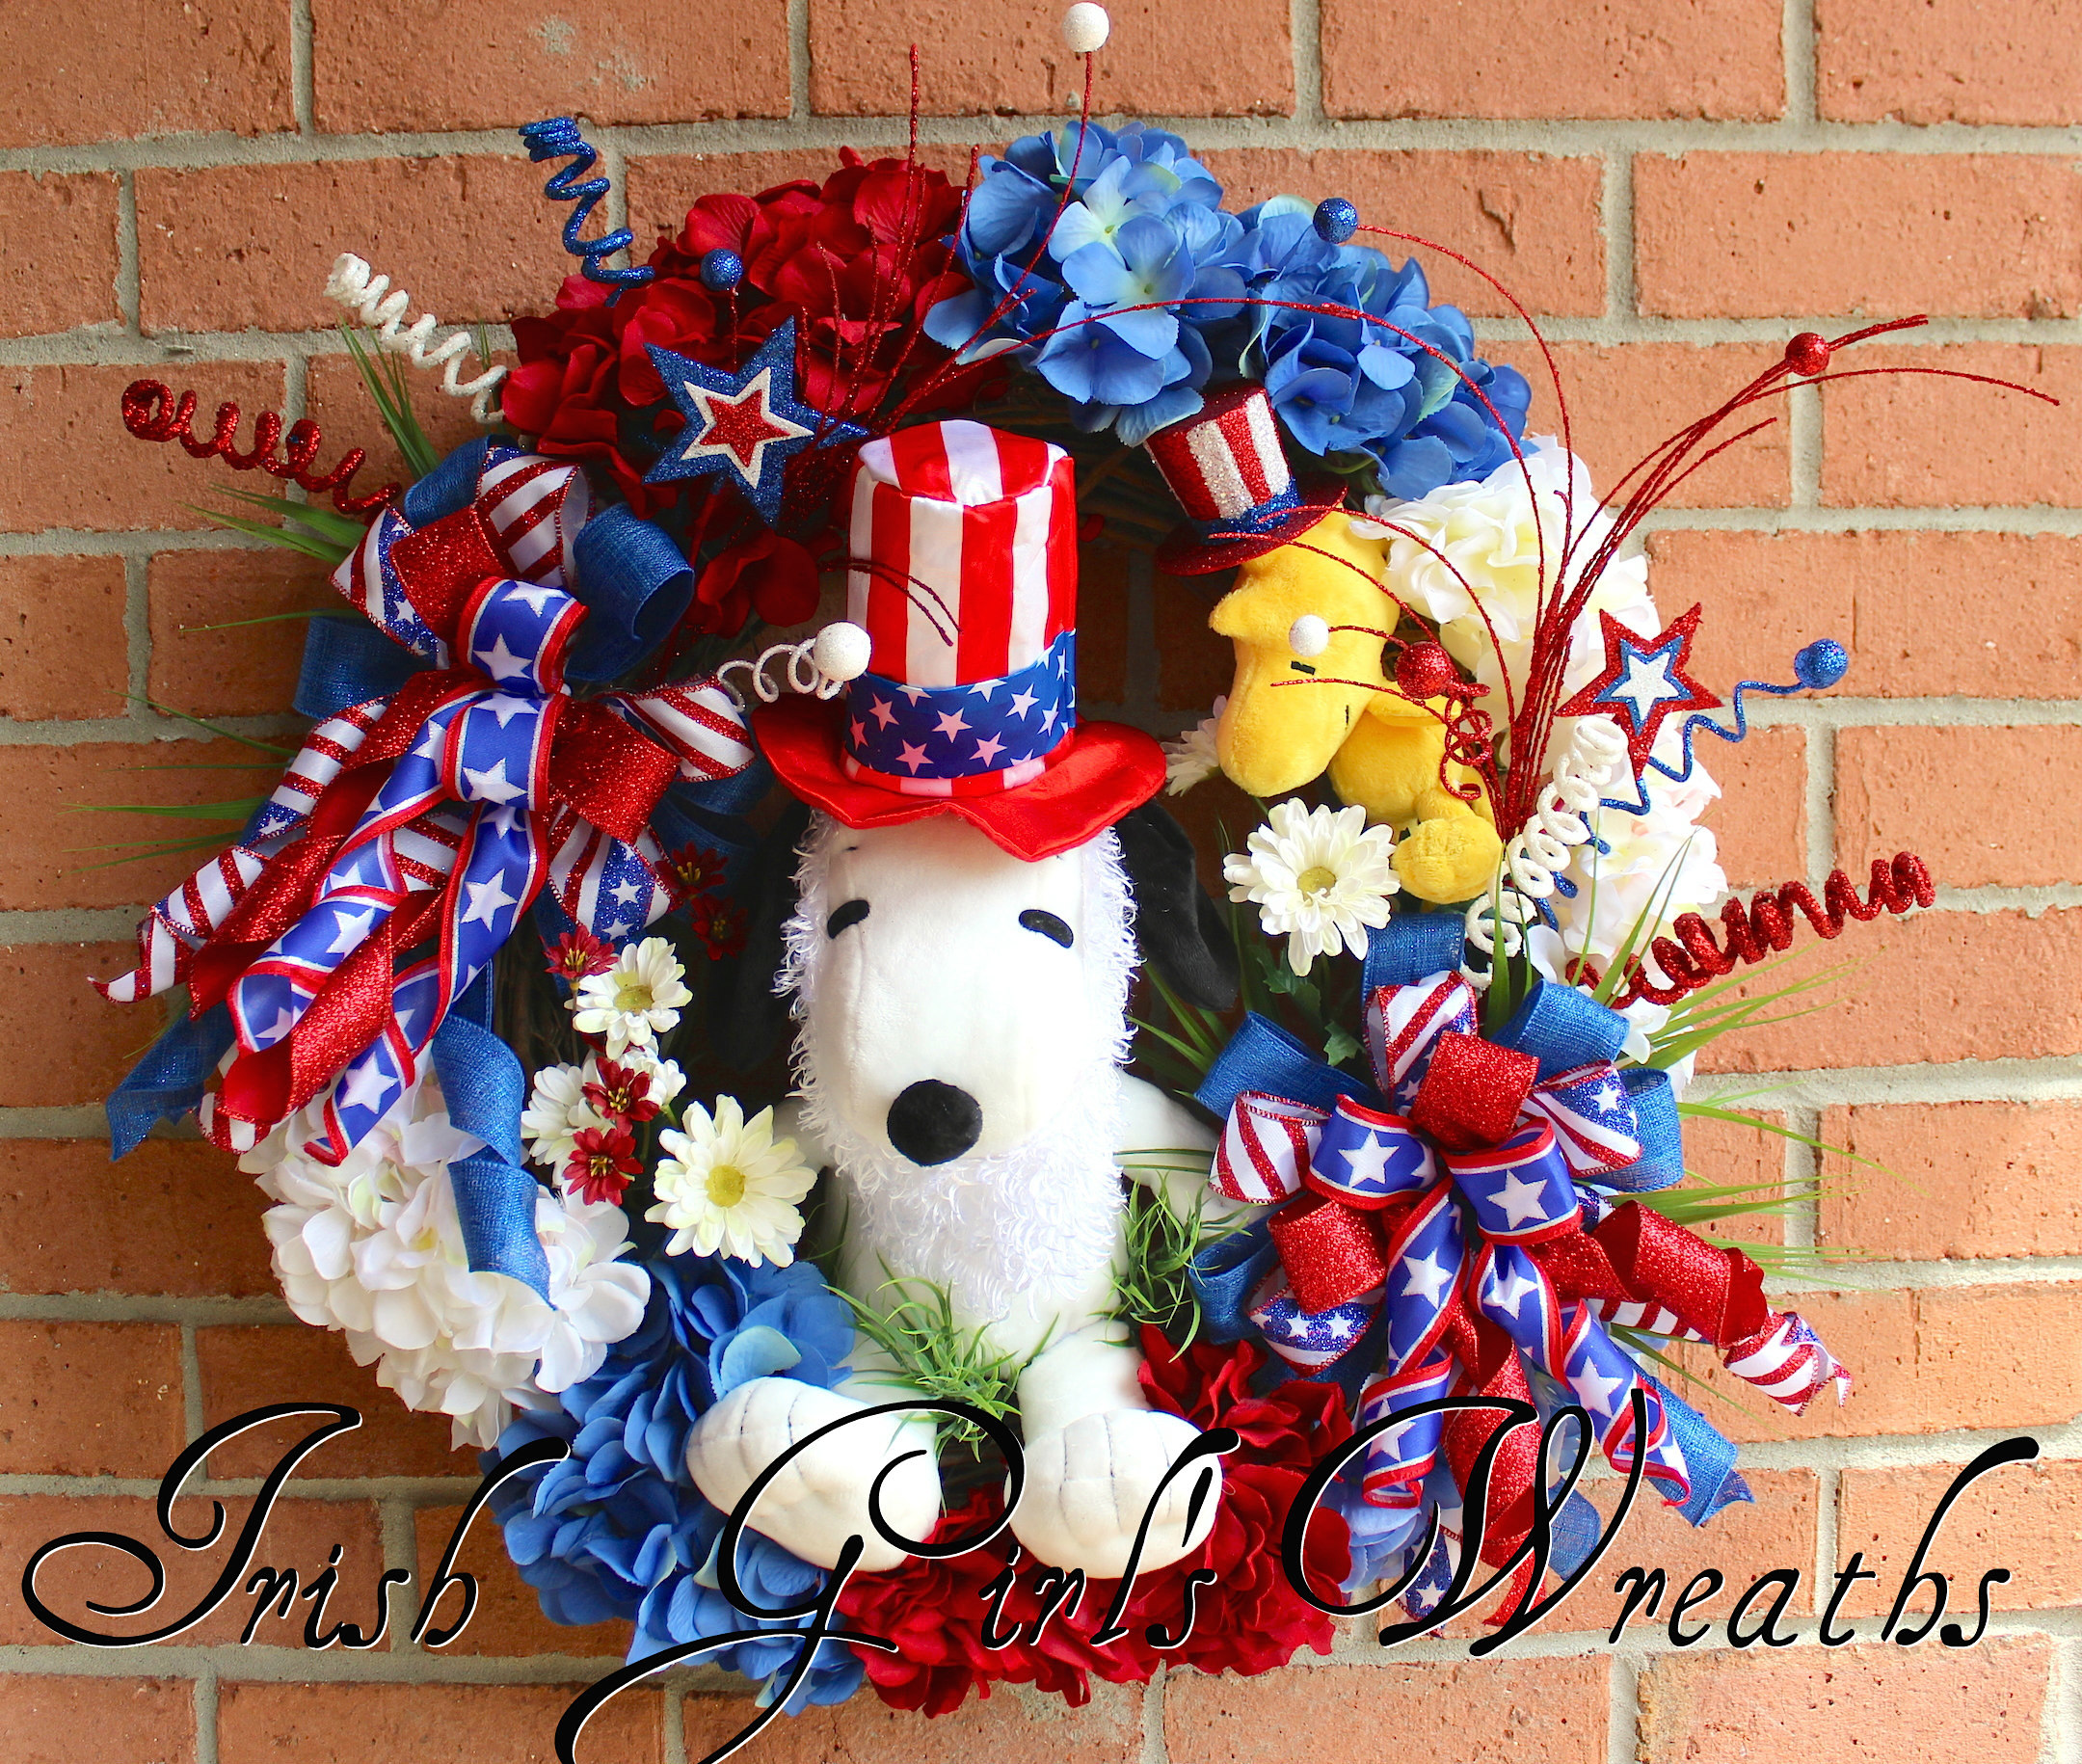 Large Snoopy & Woodstock Patriotic Wreath, Peanuts 4th of July Uncle Sam